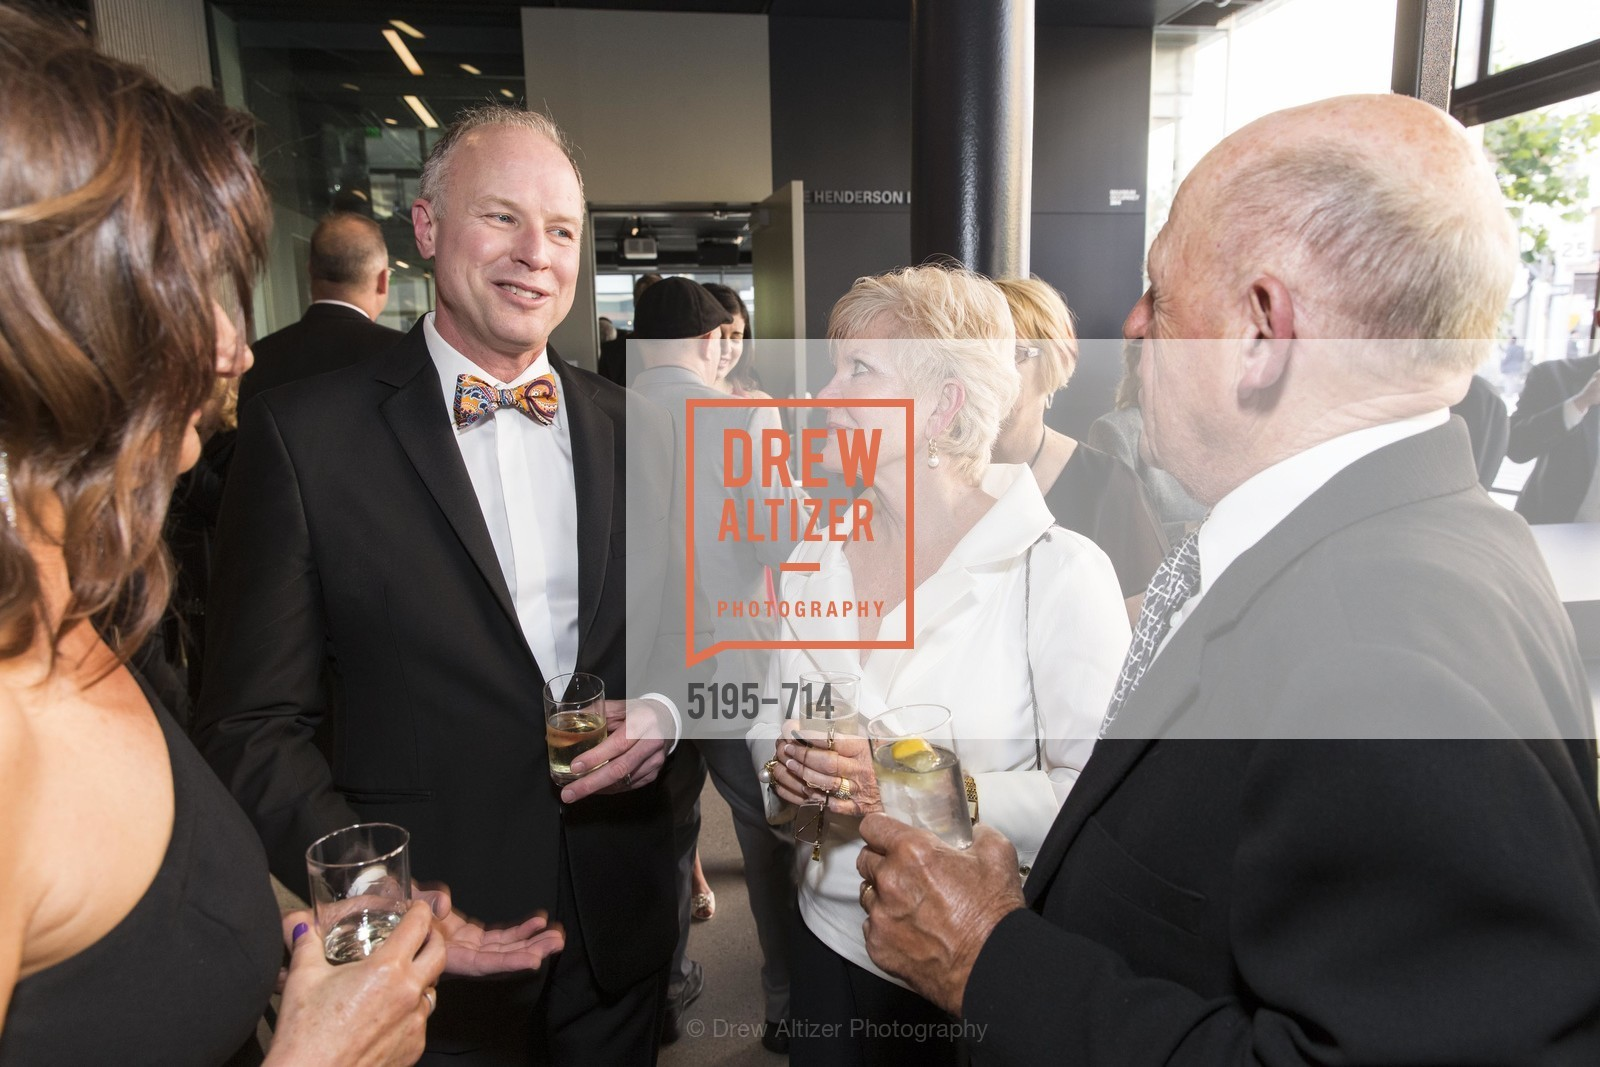 Don Derheim, Connie Lurie, Bob Lurie, SFJAZZ Gala 2015 Honors Joni Mitchell with Lifetime Achievement Award, US, May 9th, 2015,Drew Altizer, Drew Altizer Photography, full-service agency, private events, San Francisco photographer, photographer california